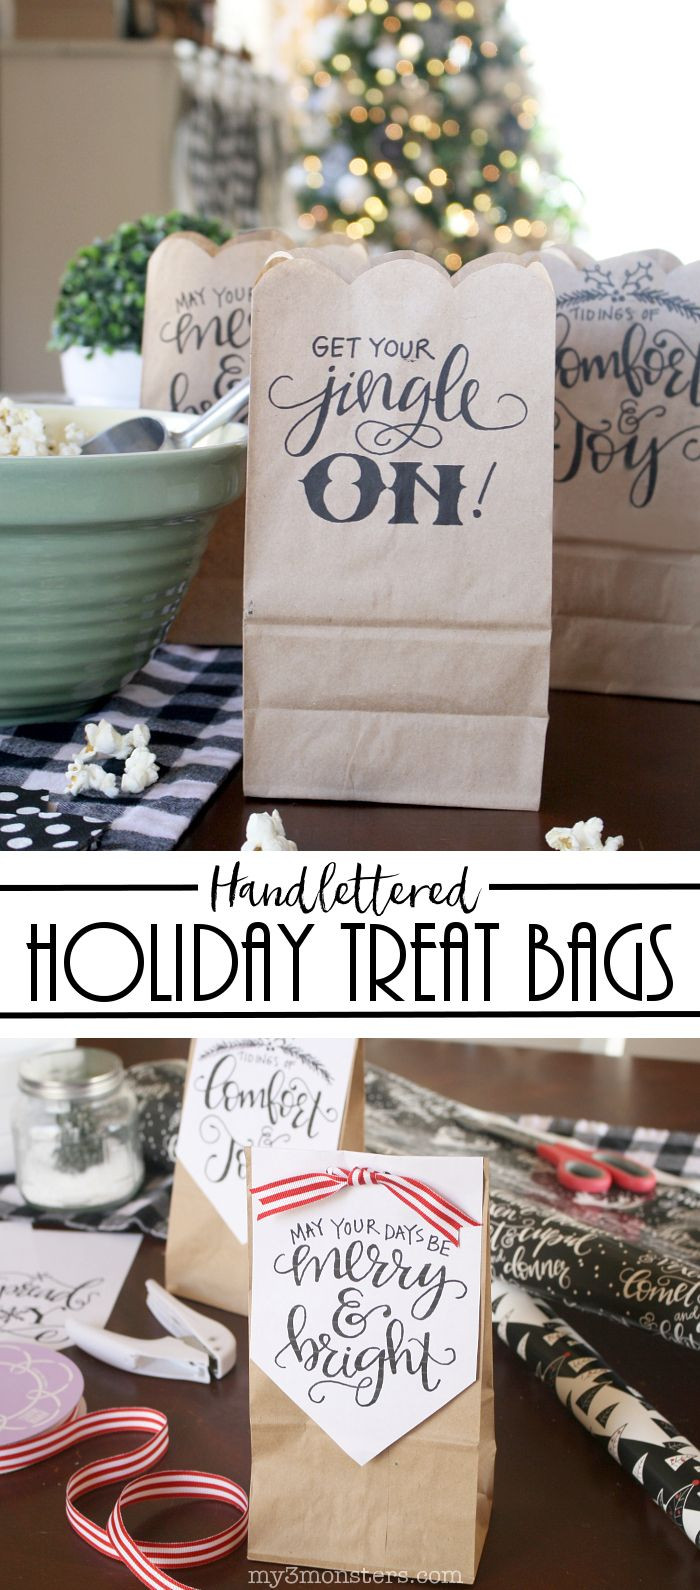 Christmas Party Goodie Bag Ideas  Best 25 Christmas treat bags ideas on Pinterest